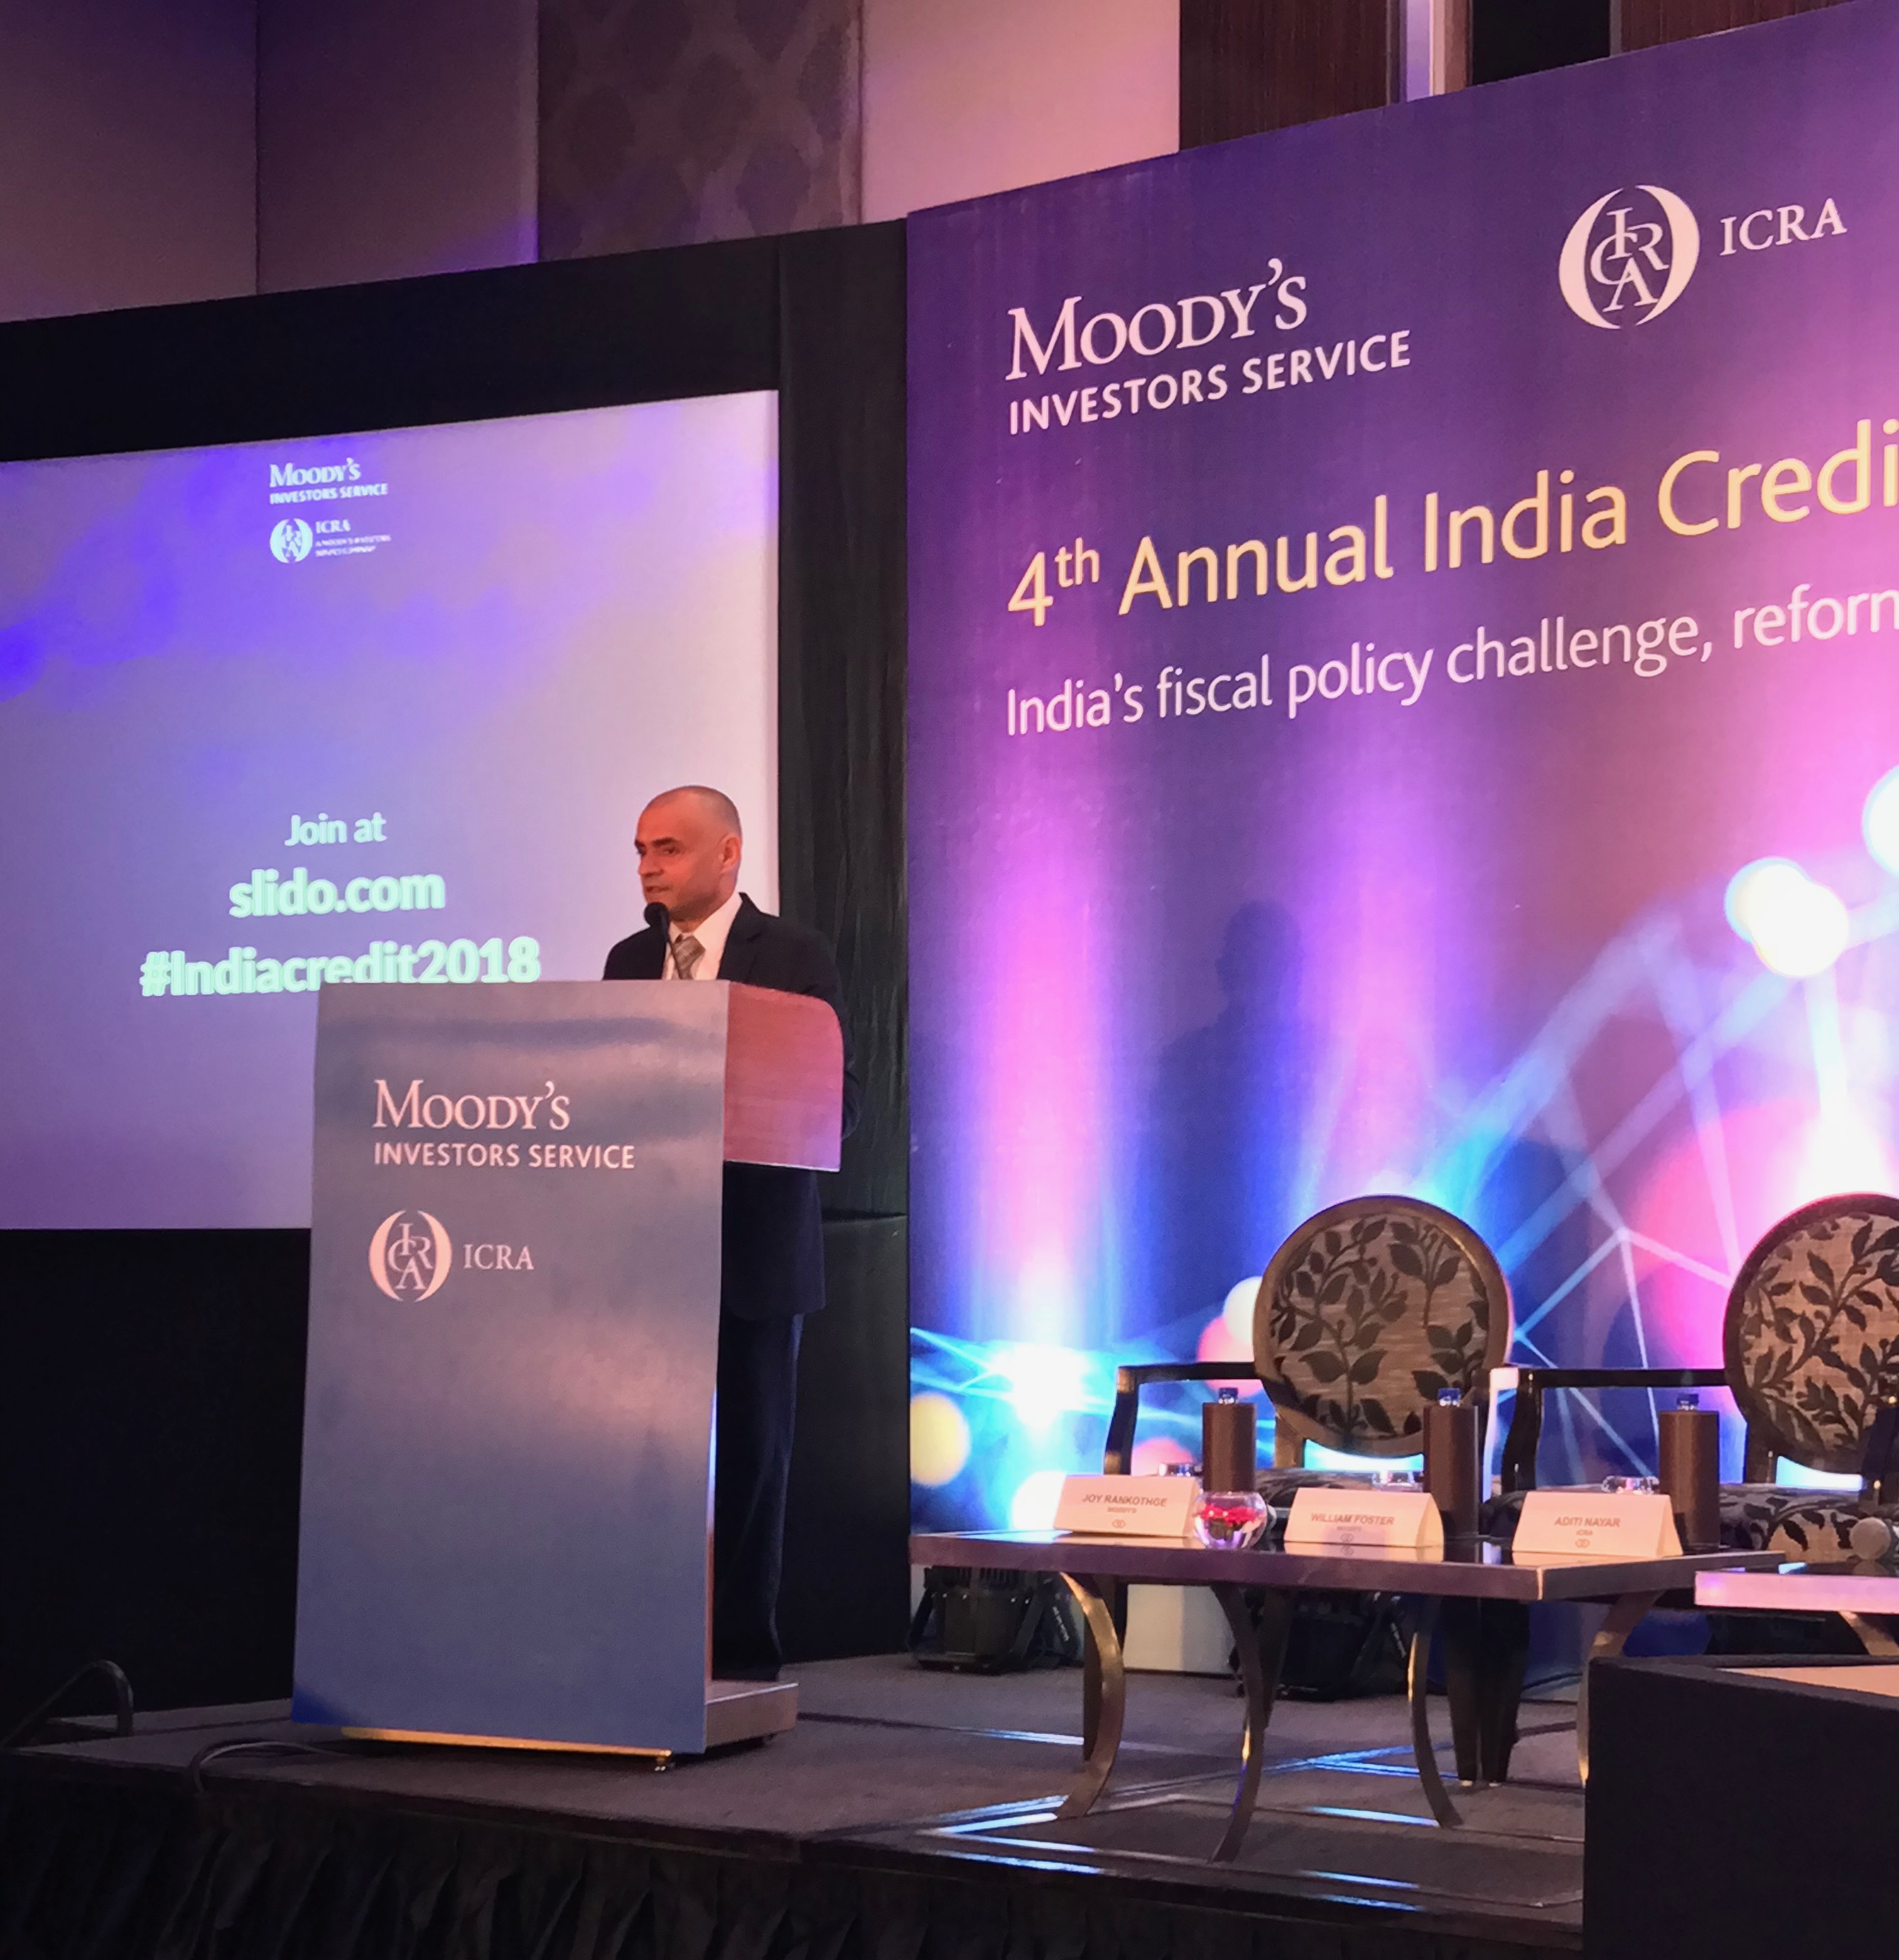 Keynote speech by Mr.Naresh Takkar, MD & Group CEO, ICRA Ltd at Moody's ICRA 4th Annual India Credit Conference in Mumbai.